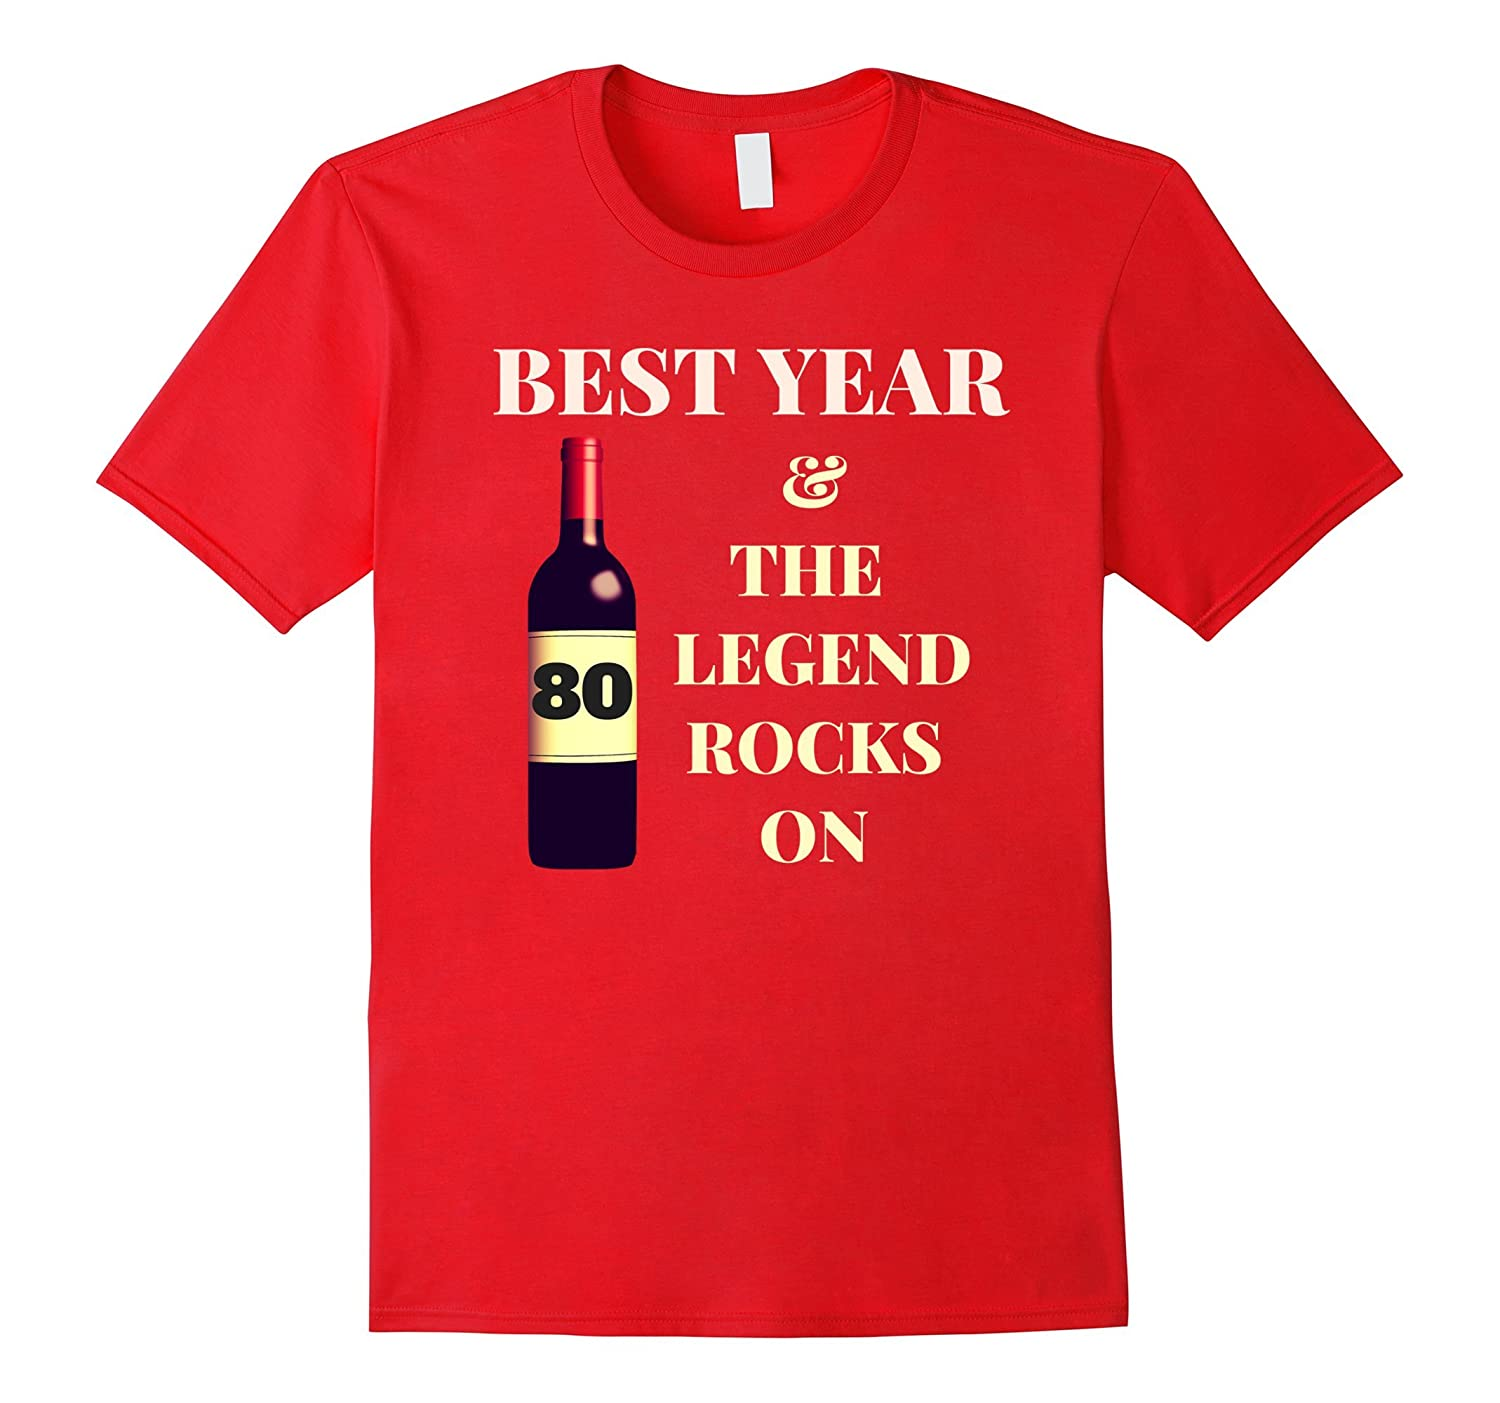 80 Best Year & The Legend Rocks On T-Shirt-FL